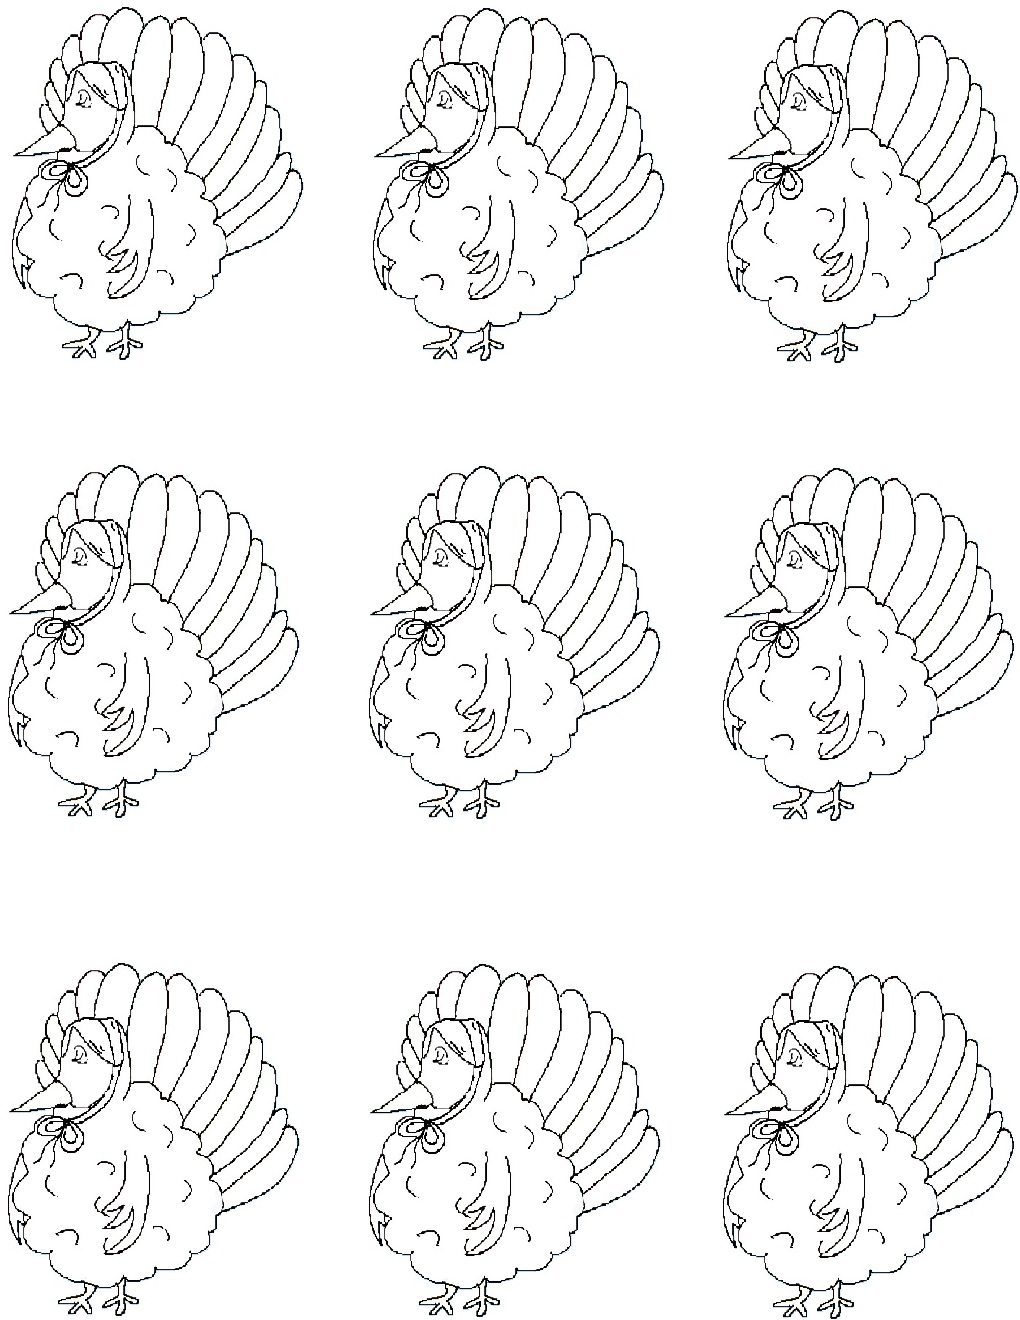 Thanksgiving templates turkey with bonnet 6 pronofoot35fo Choice Image